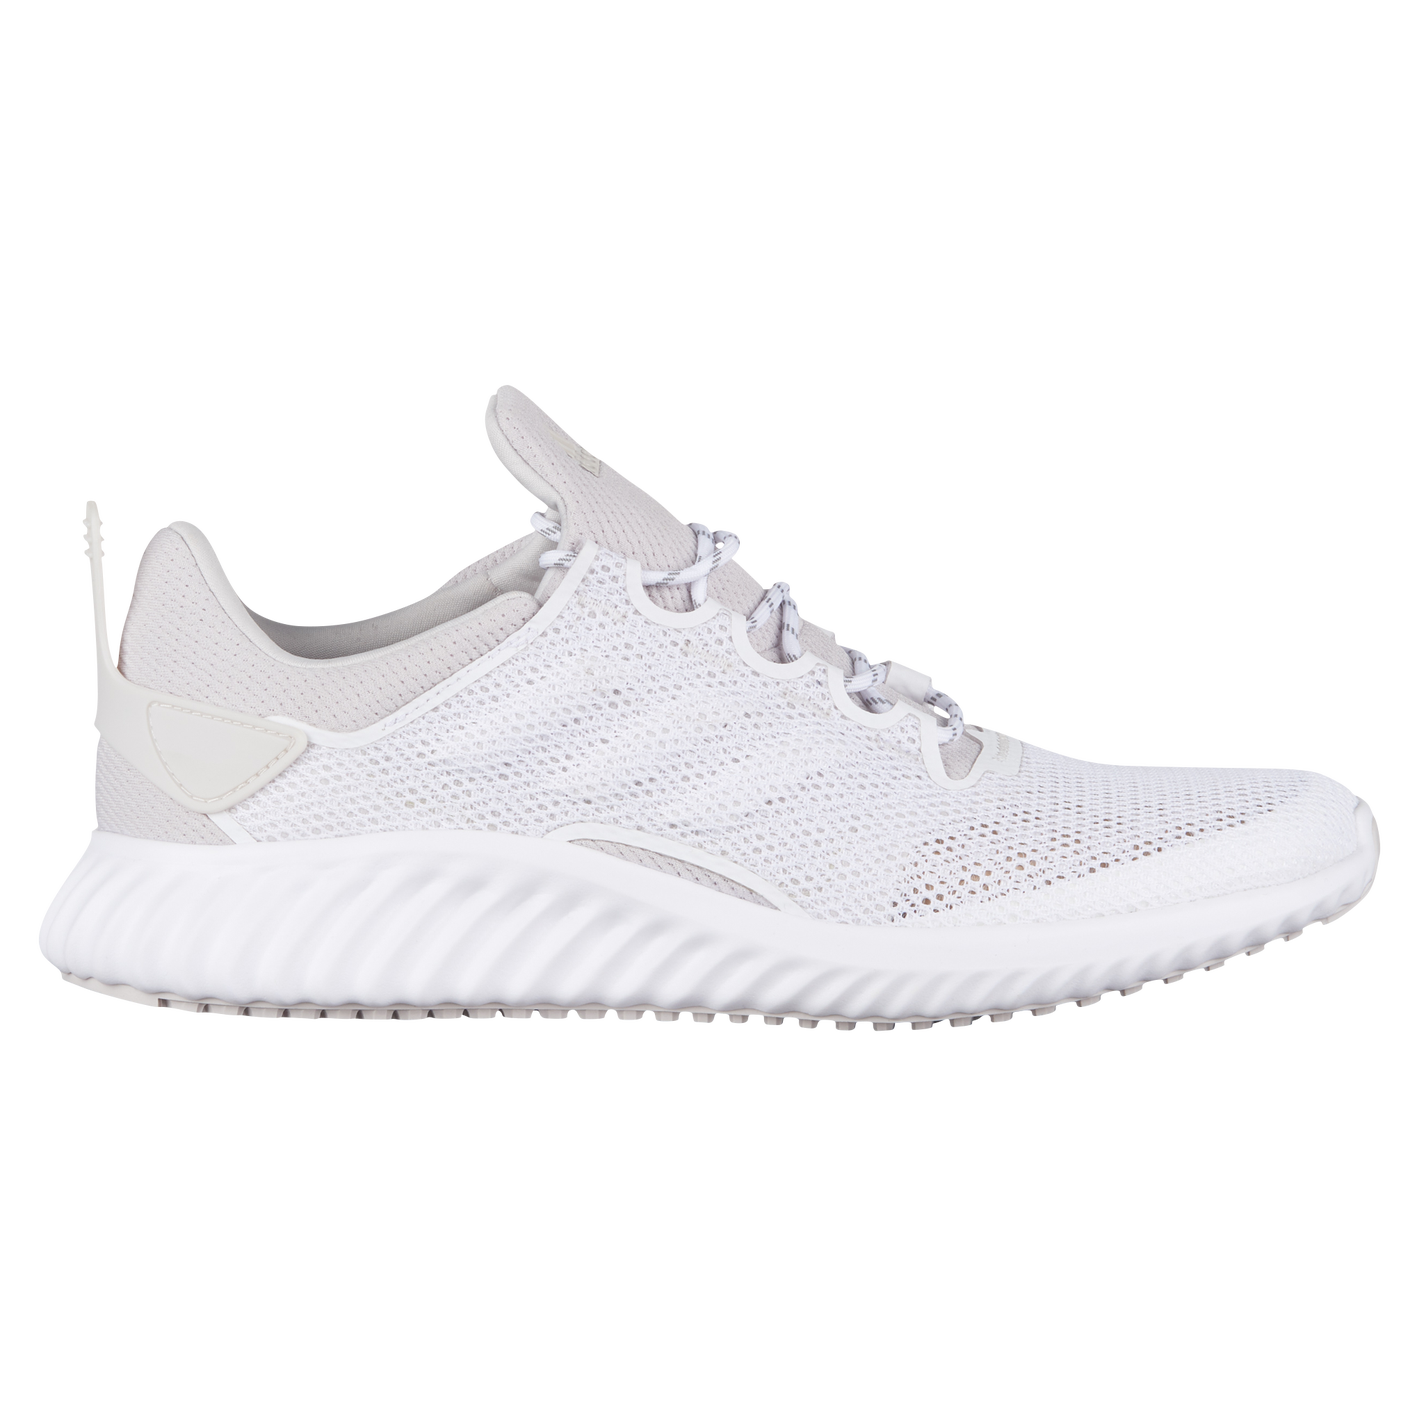 86066d79b3ea6 adidas Alphabounce City Run Climacool - Men s - Running - Shoes ...